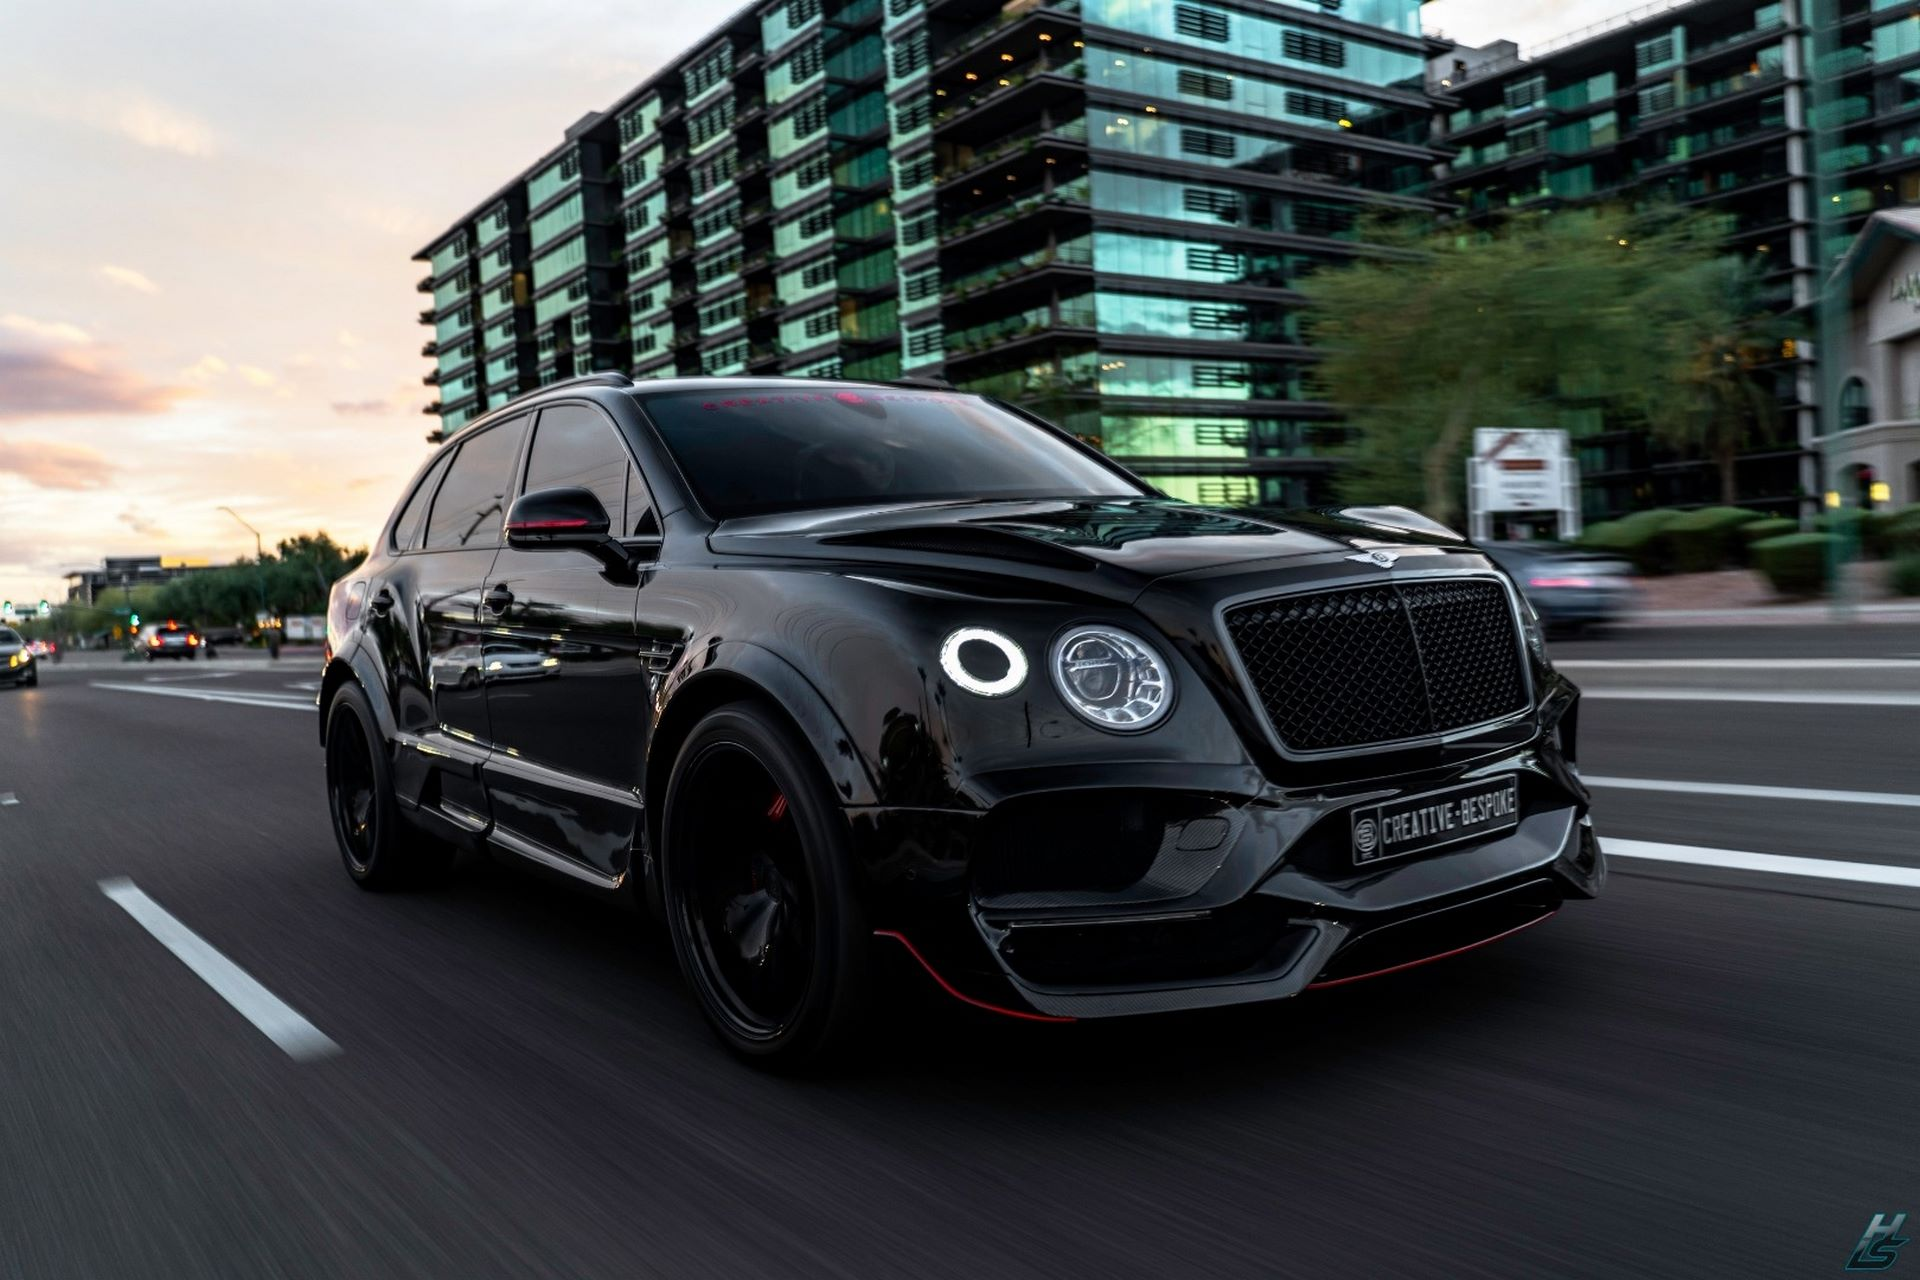 Bentley-Bentayga-by-Creative-Bespoke-2